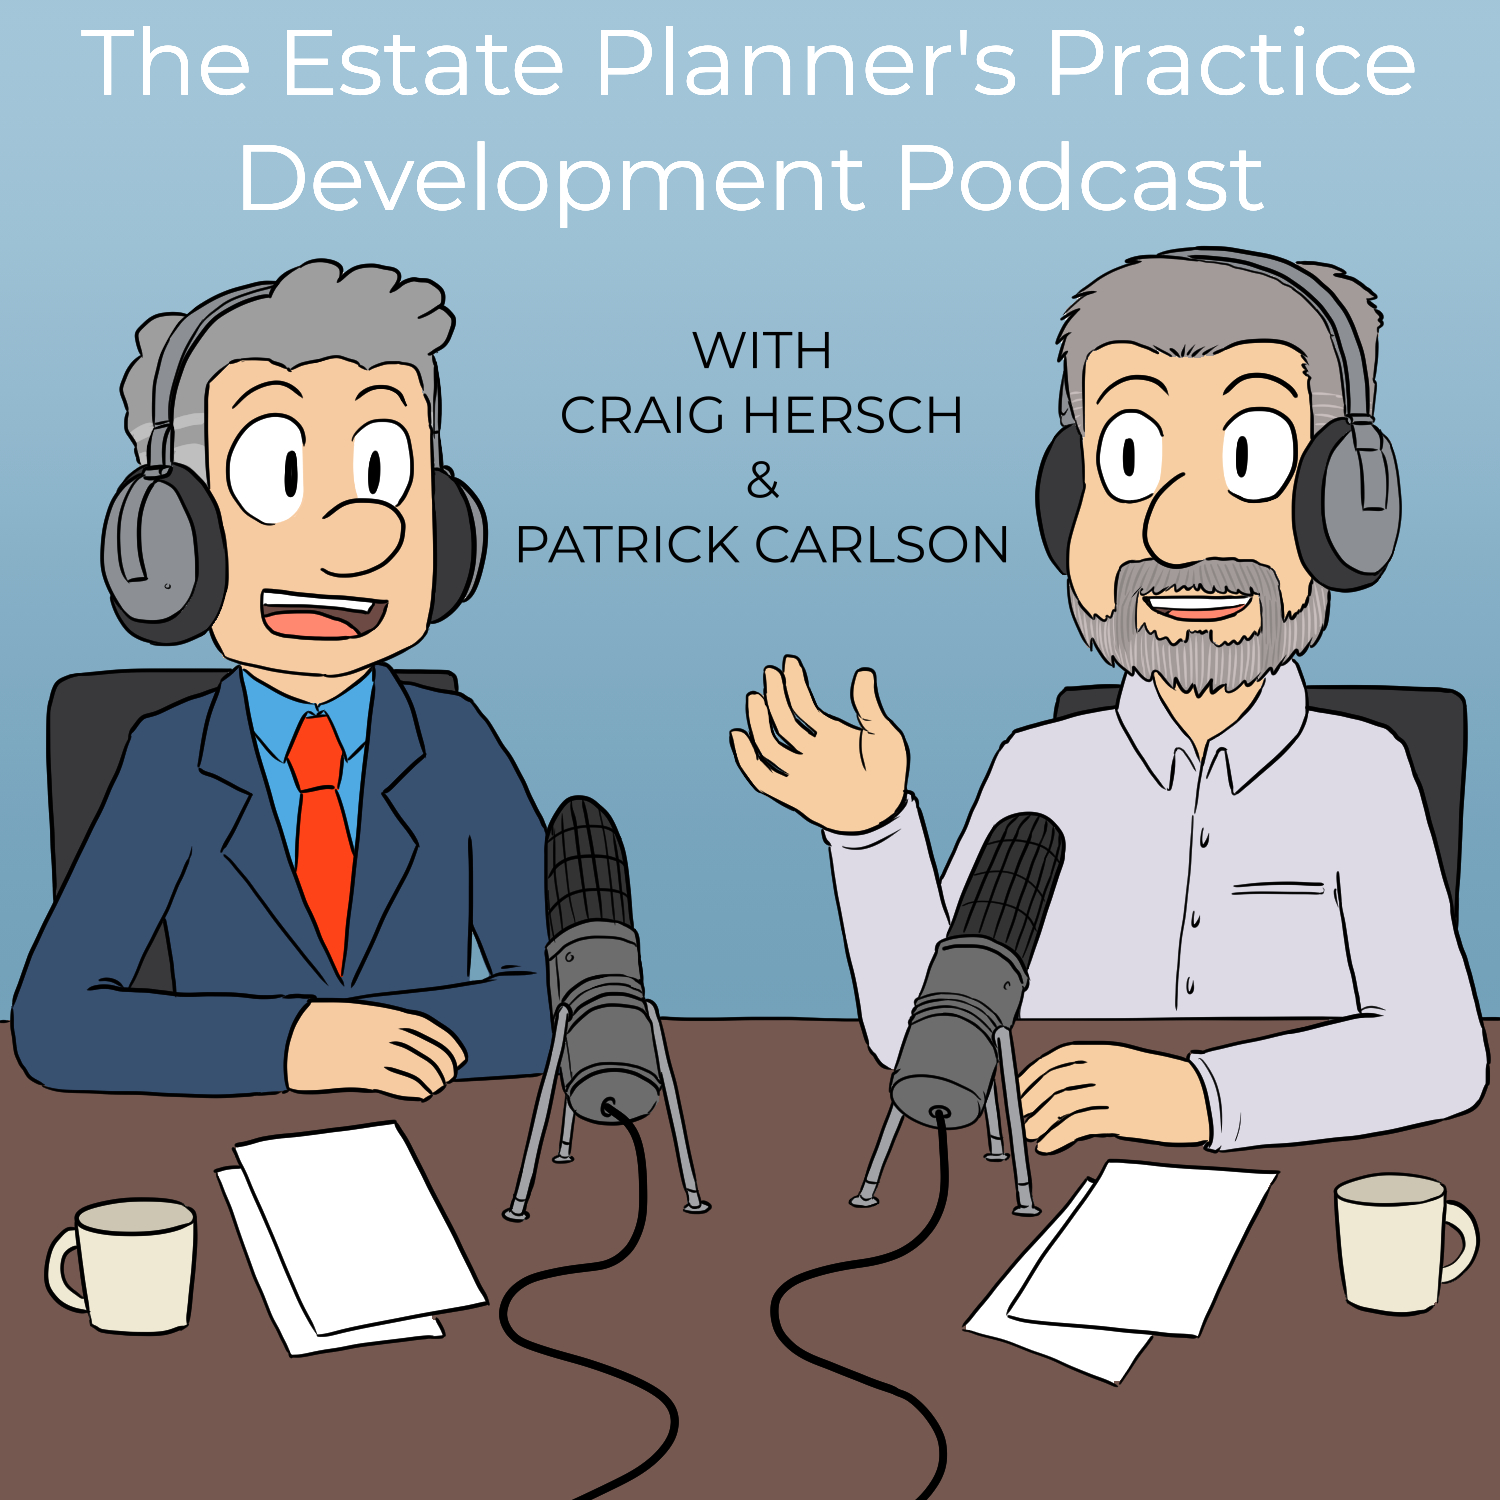 The Estate Planner's Practice Development Podcast